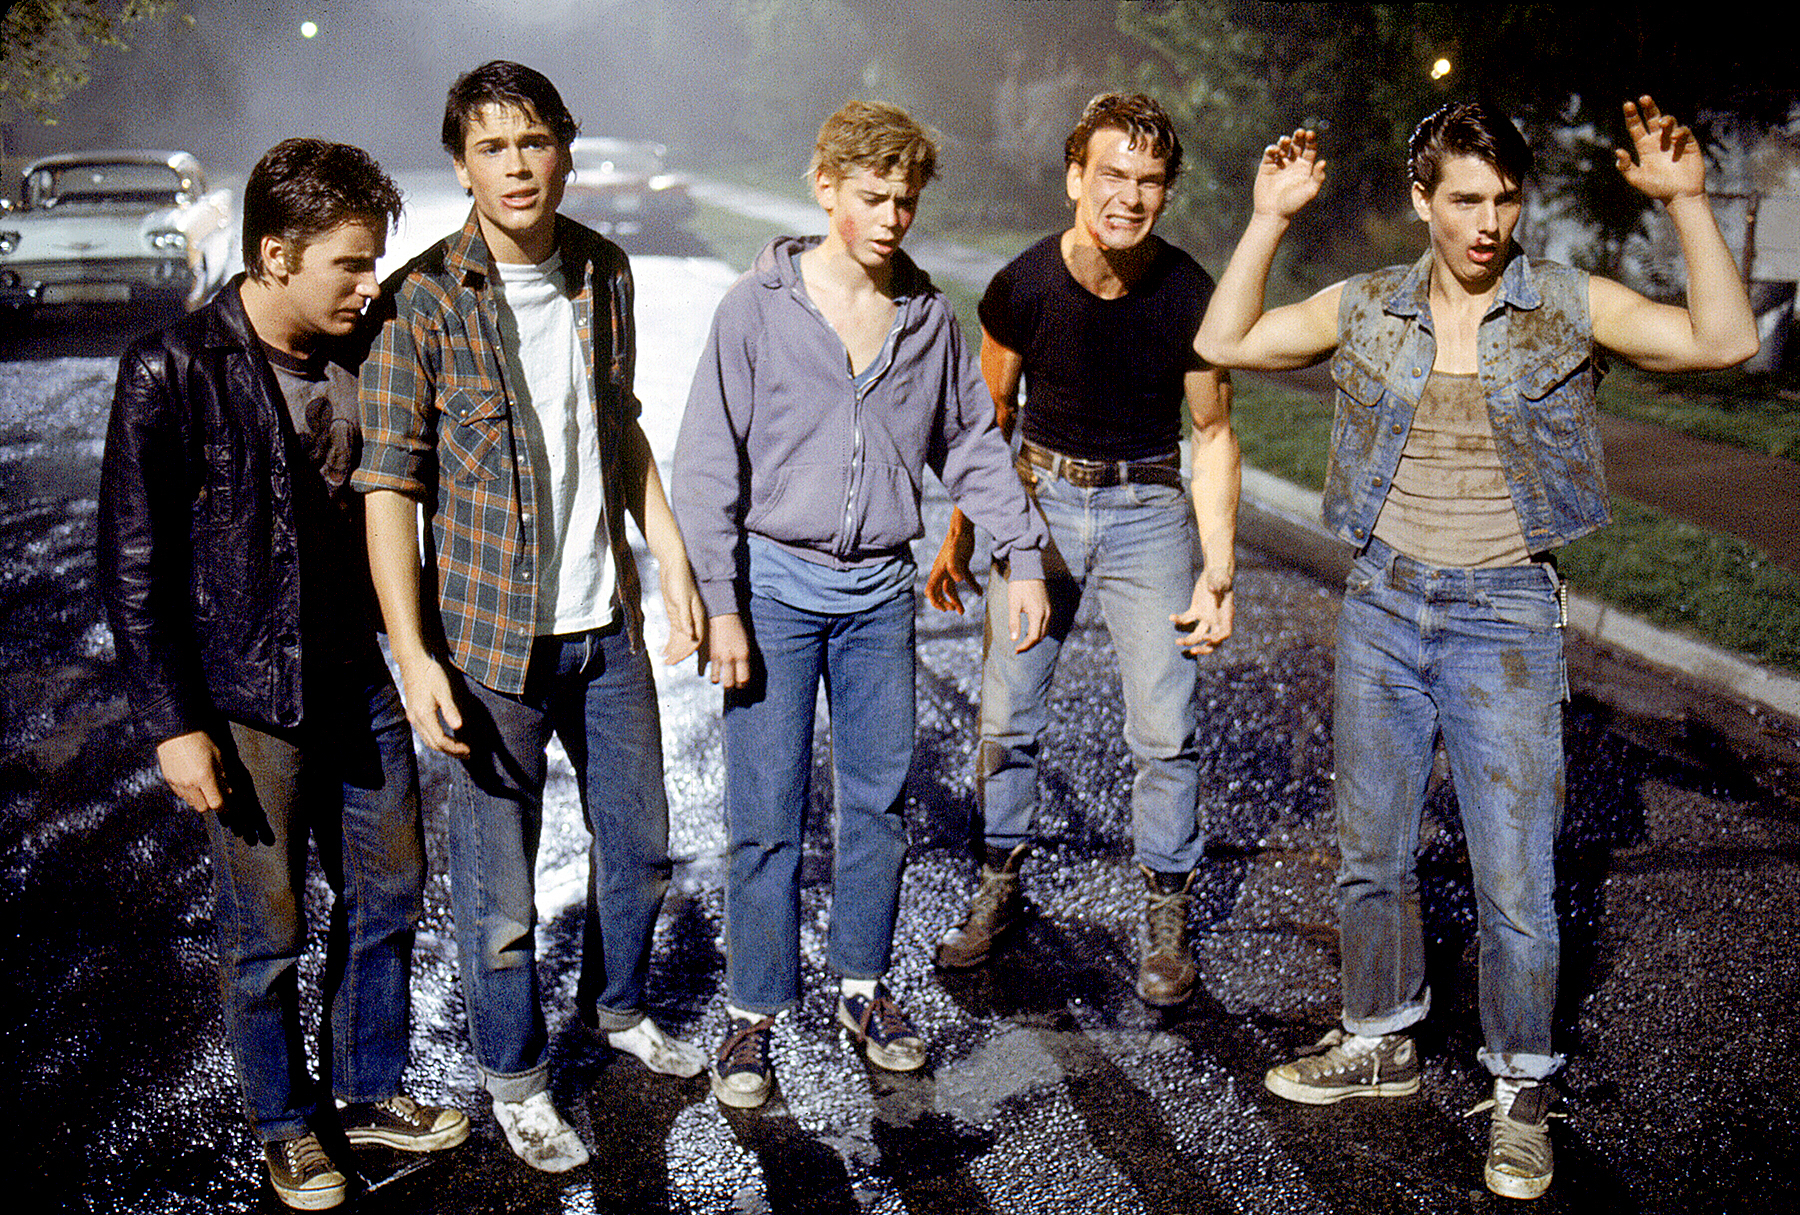 Emilio Estevez, Rob Lowe, Thomas C. Howell, Patrick Swayze, and Tom Cruise on the set of The Outsiders.